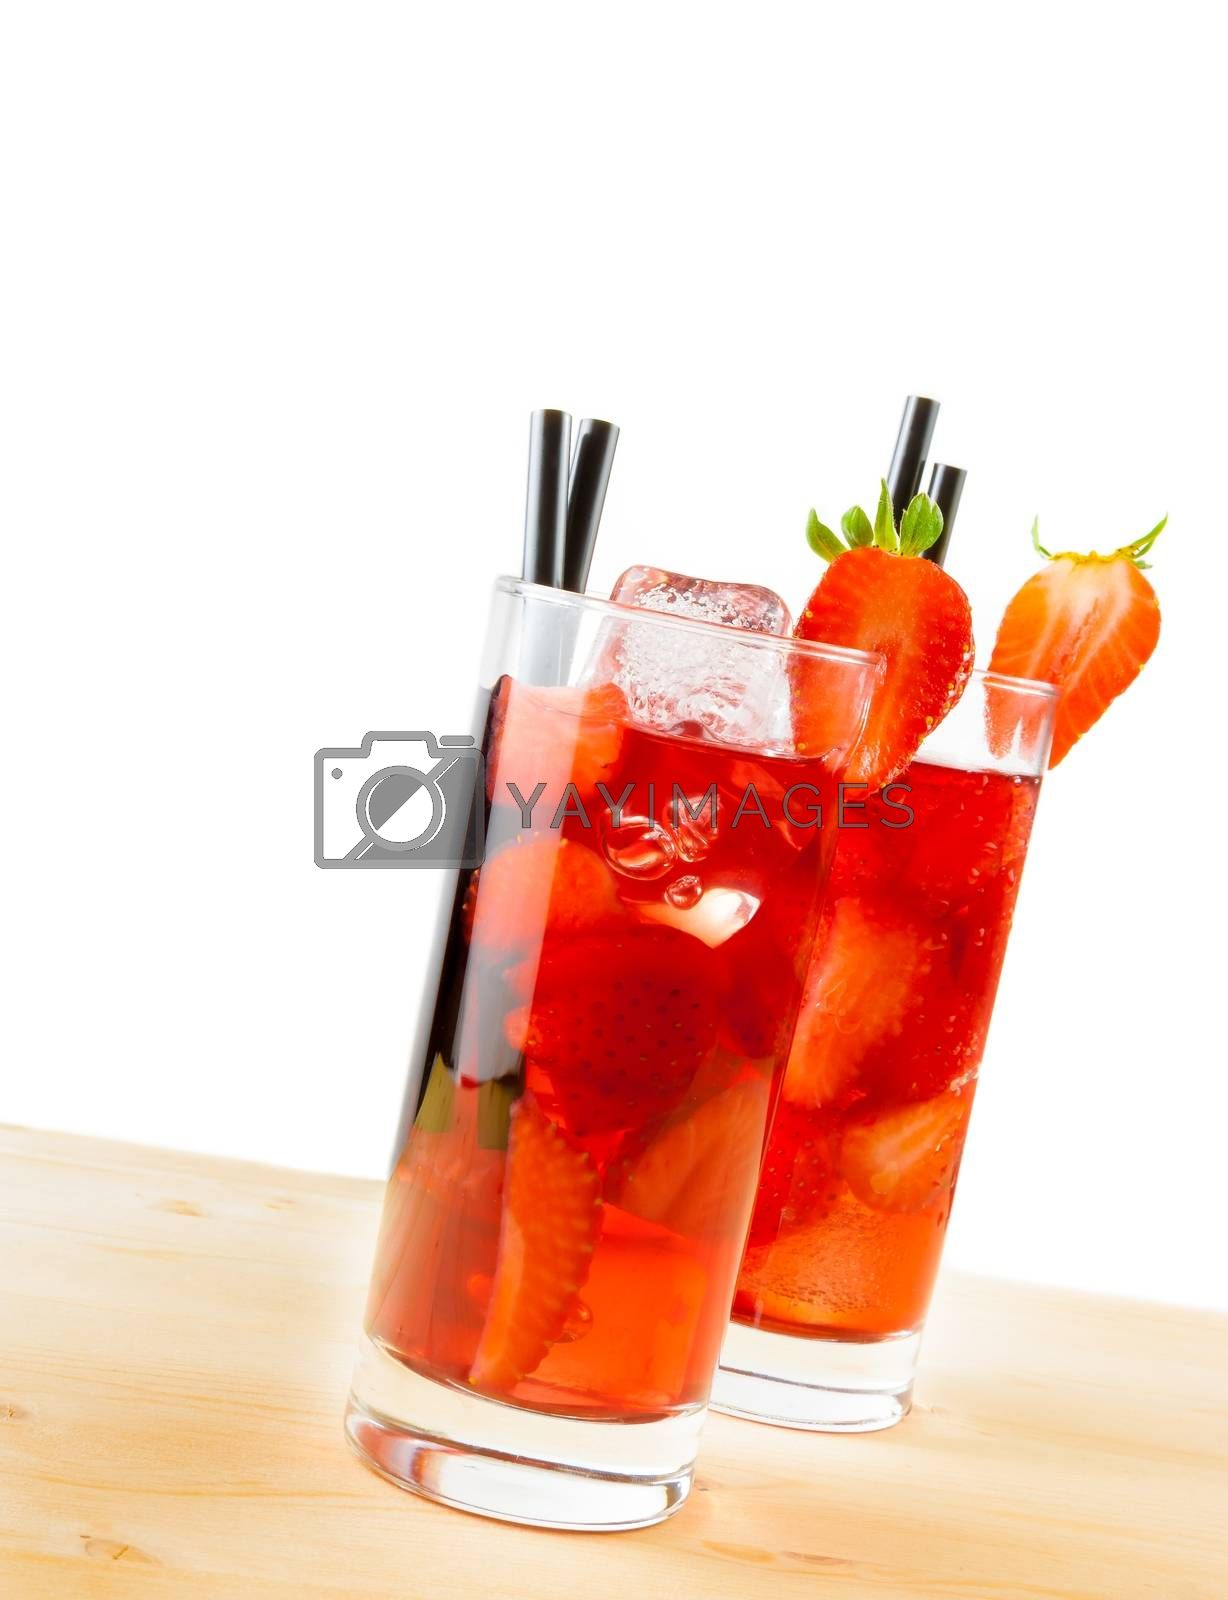 two glasses of strawberry cocktail with ice on light wood table  by donfiore